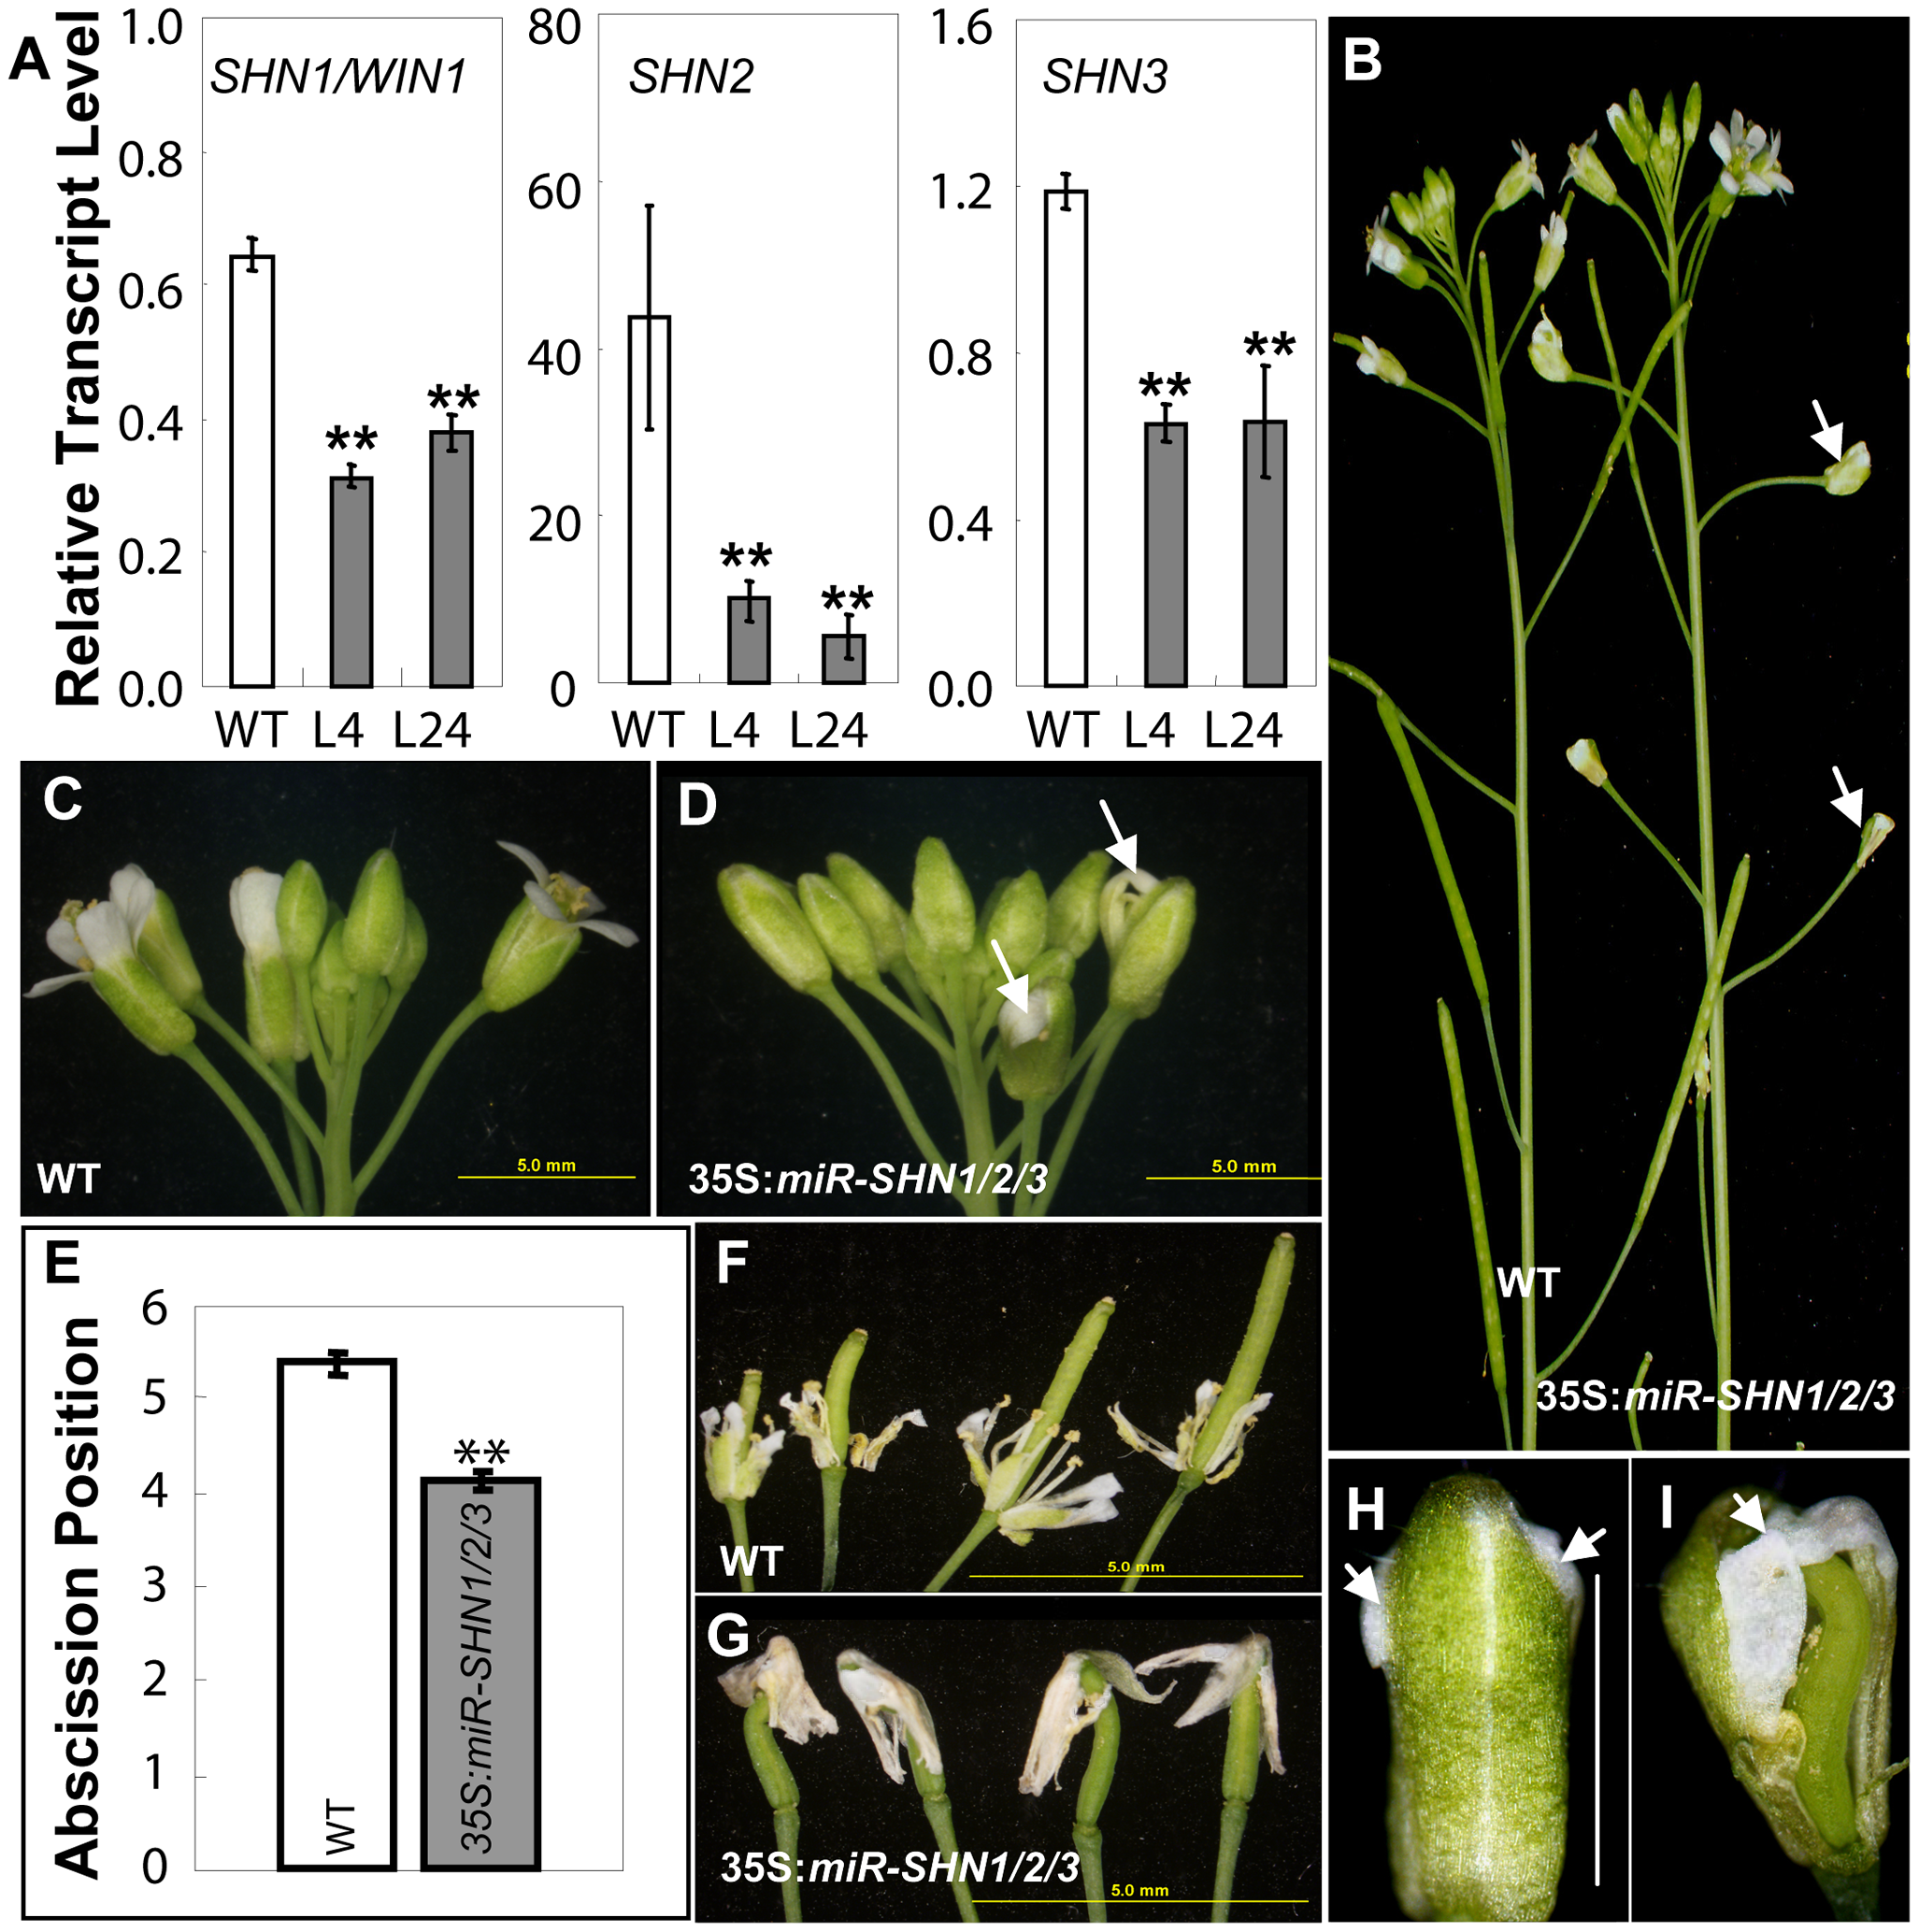 Co-silencing of the three <i>SHN</i> clade genes impacts reproductive organ morphology and cell type–specific characteristics.